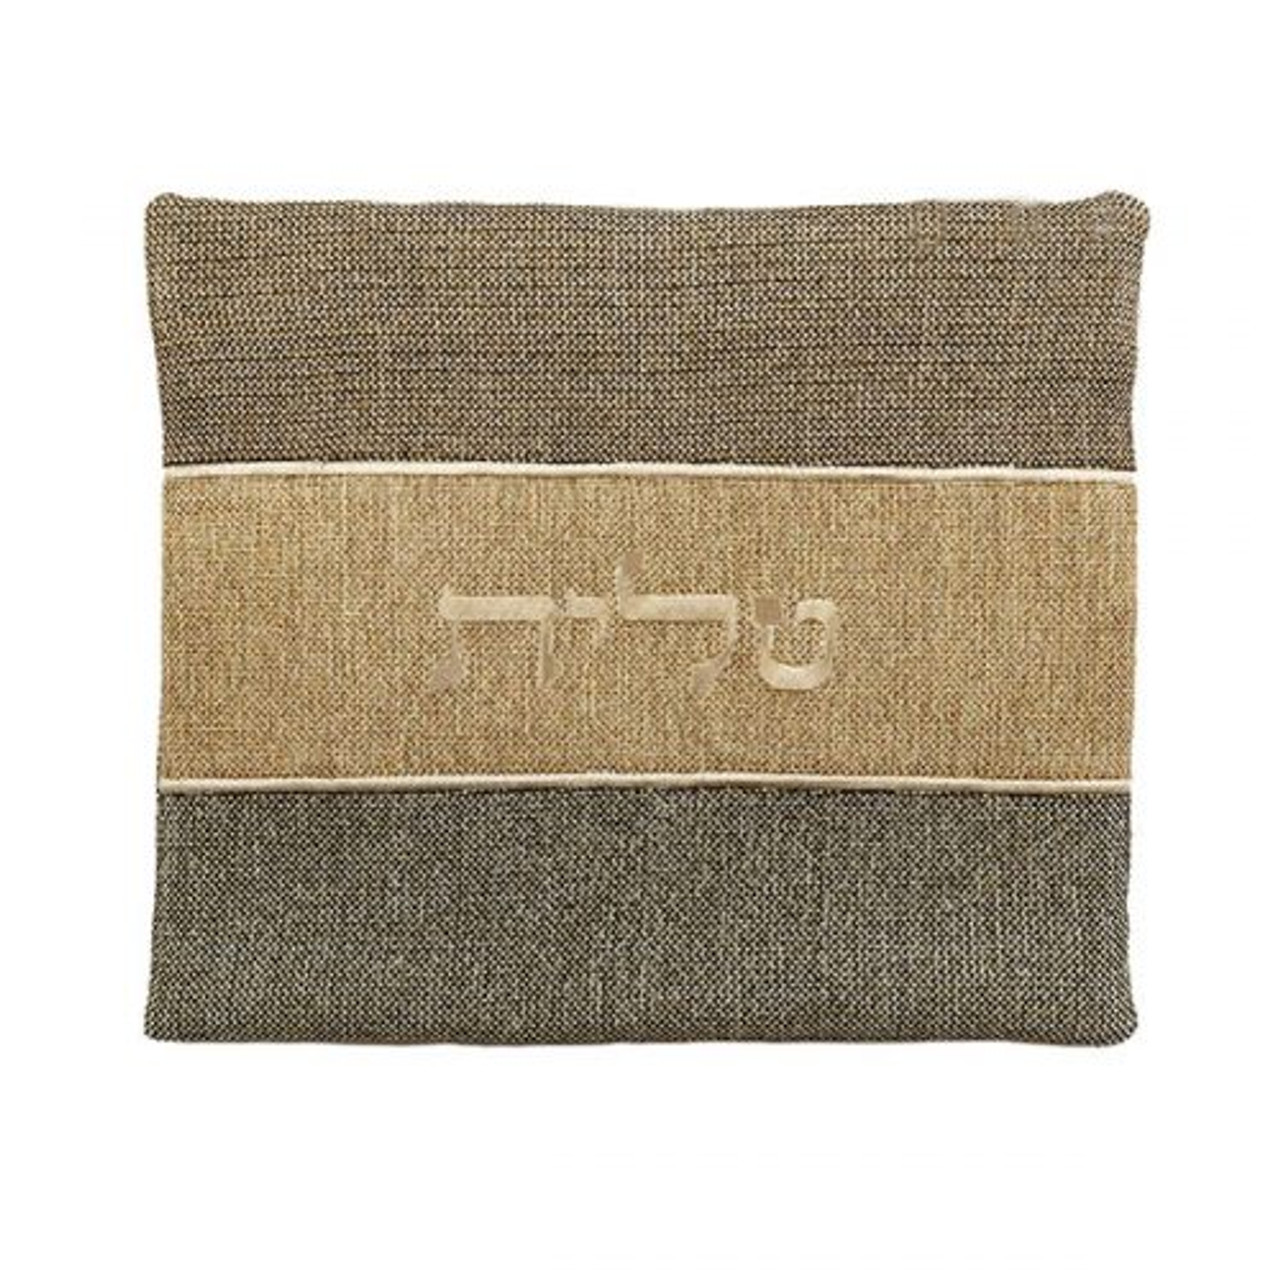 Brown & Beige Linen Tallit Bag